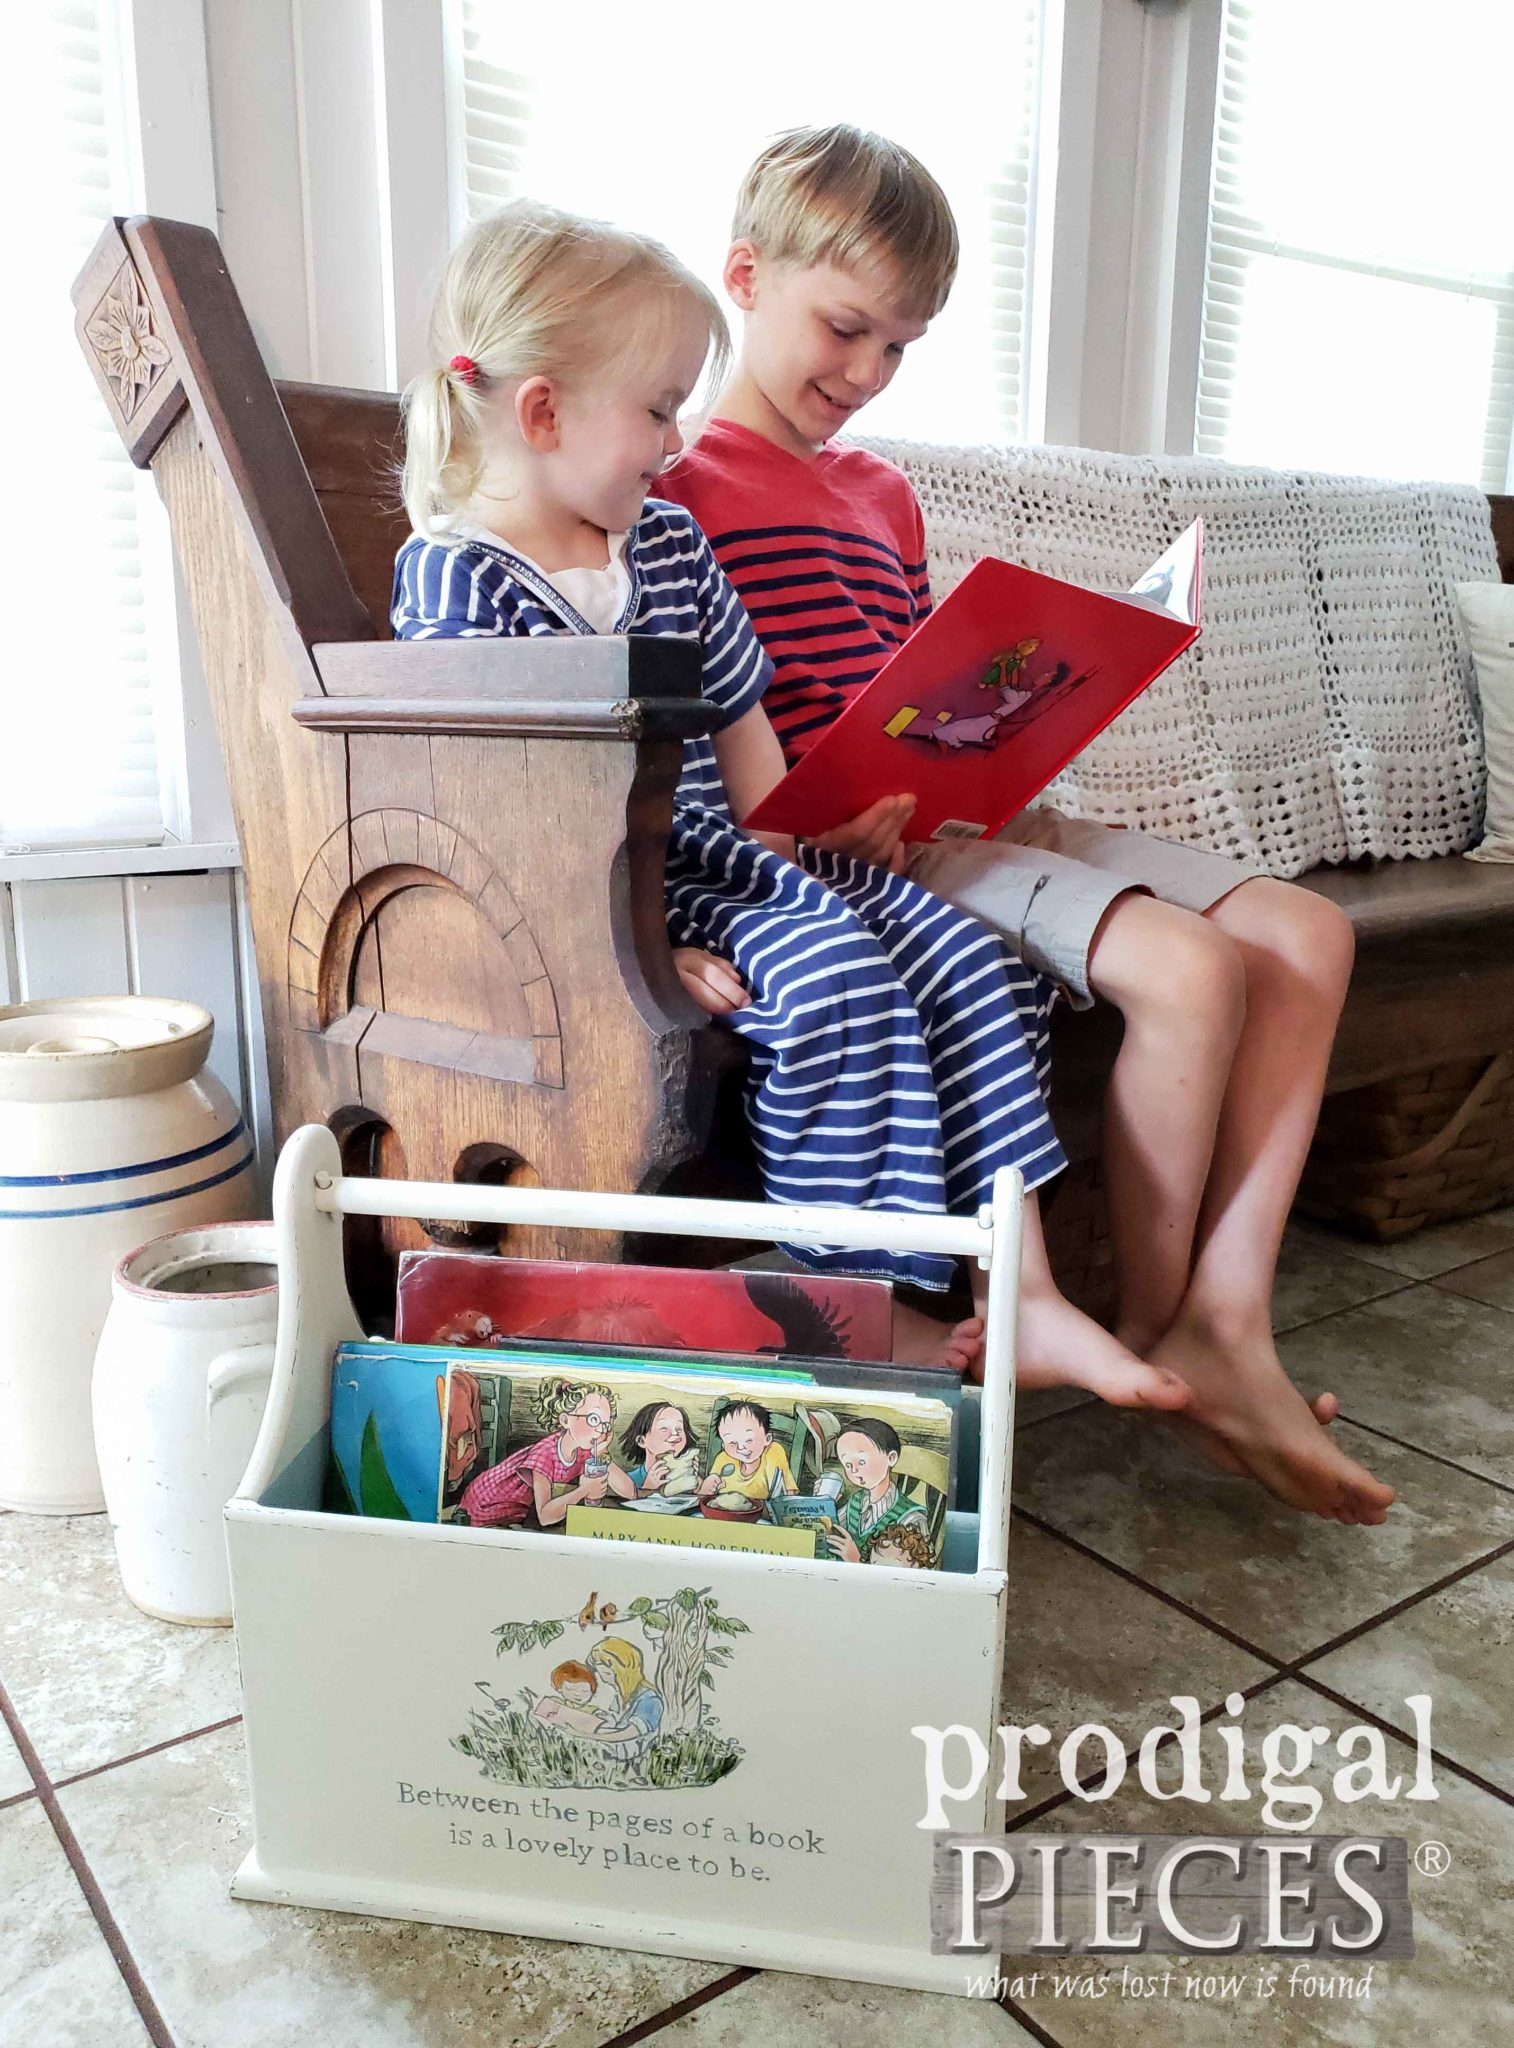 Kids Reading Books Using an Upcycled Magazine Rack as a Book Caddy | DIY Fun with Printable Reading Checkllist by Prodigal Pieces | prodigalpieces.com